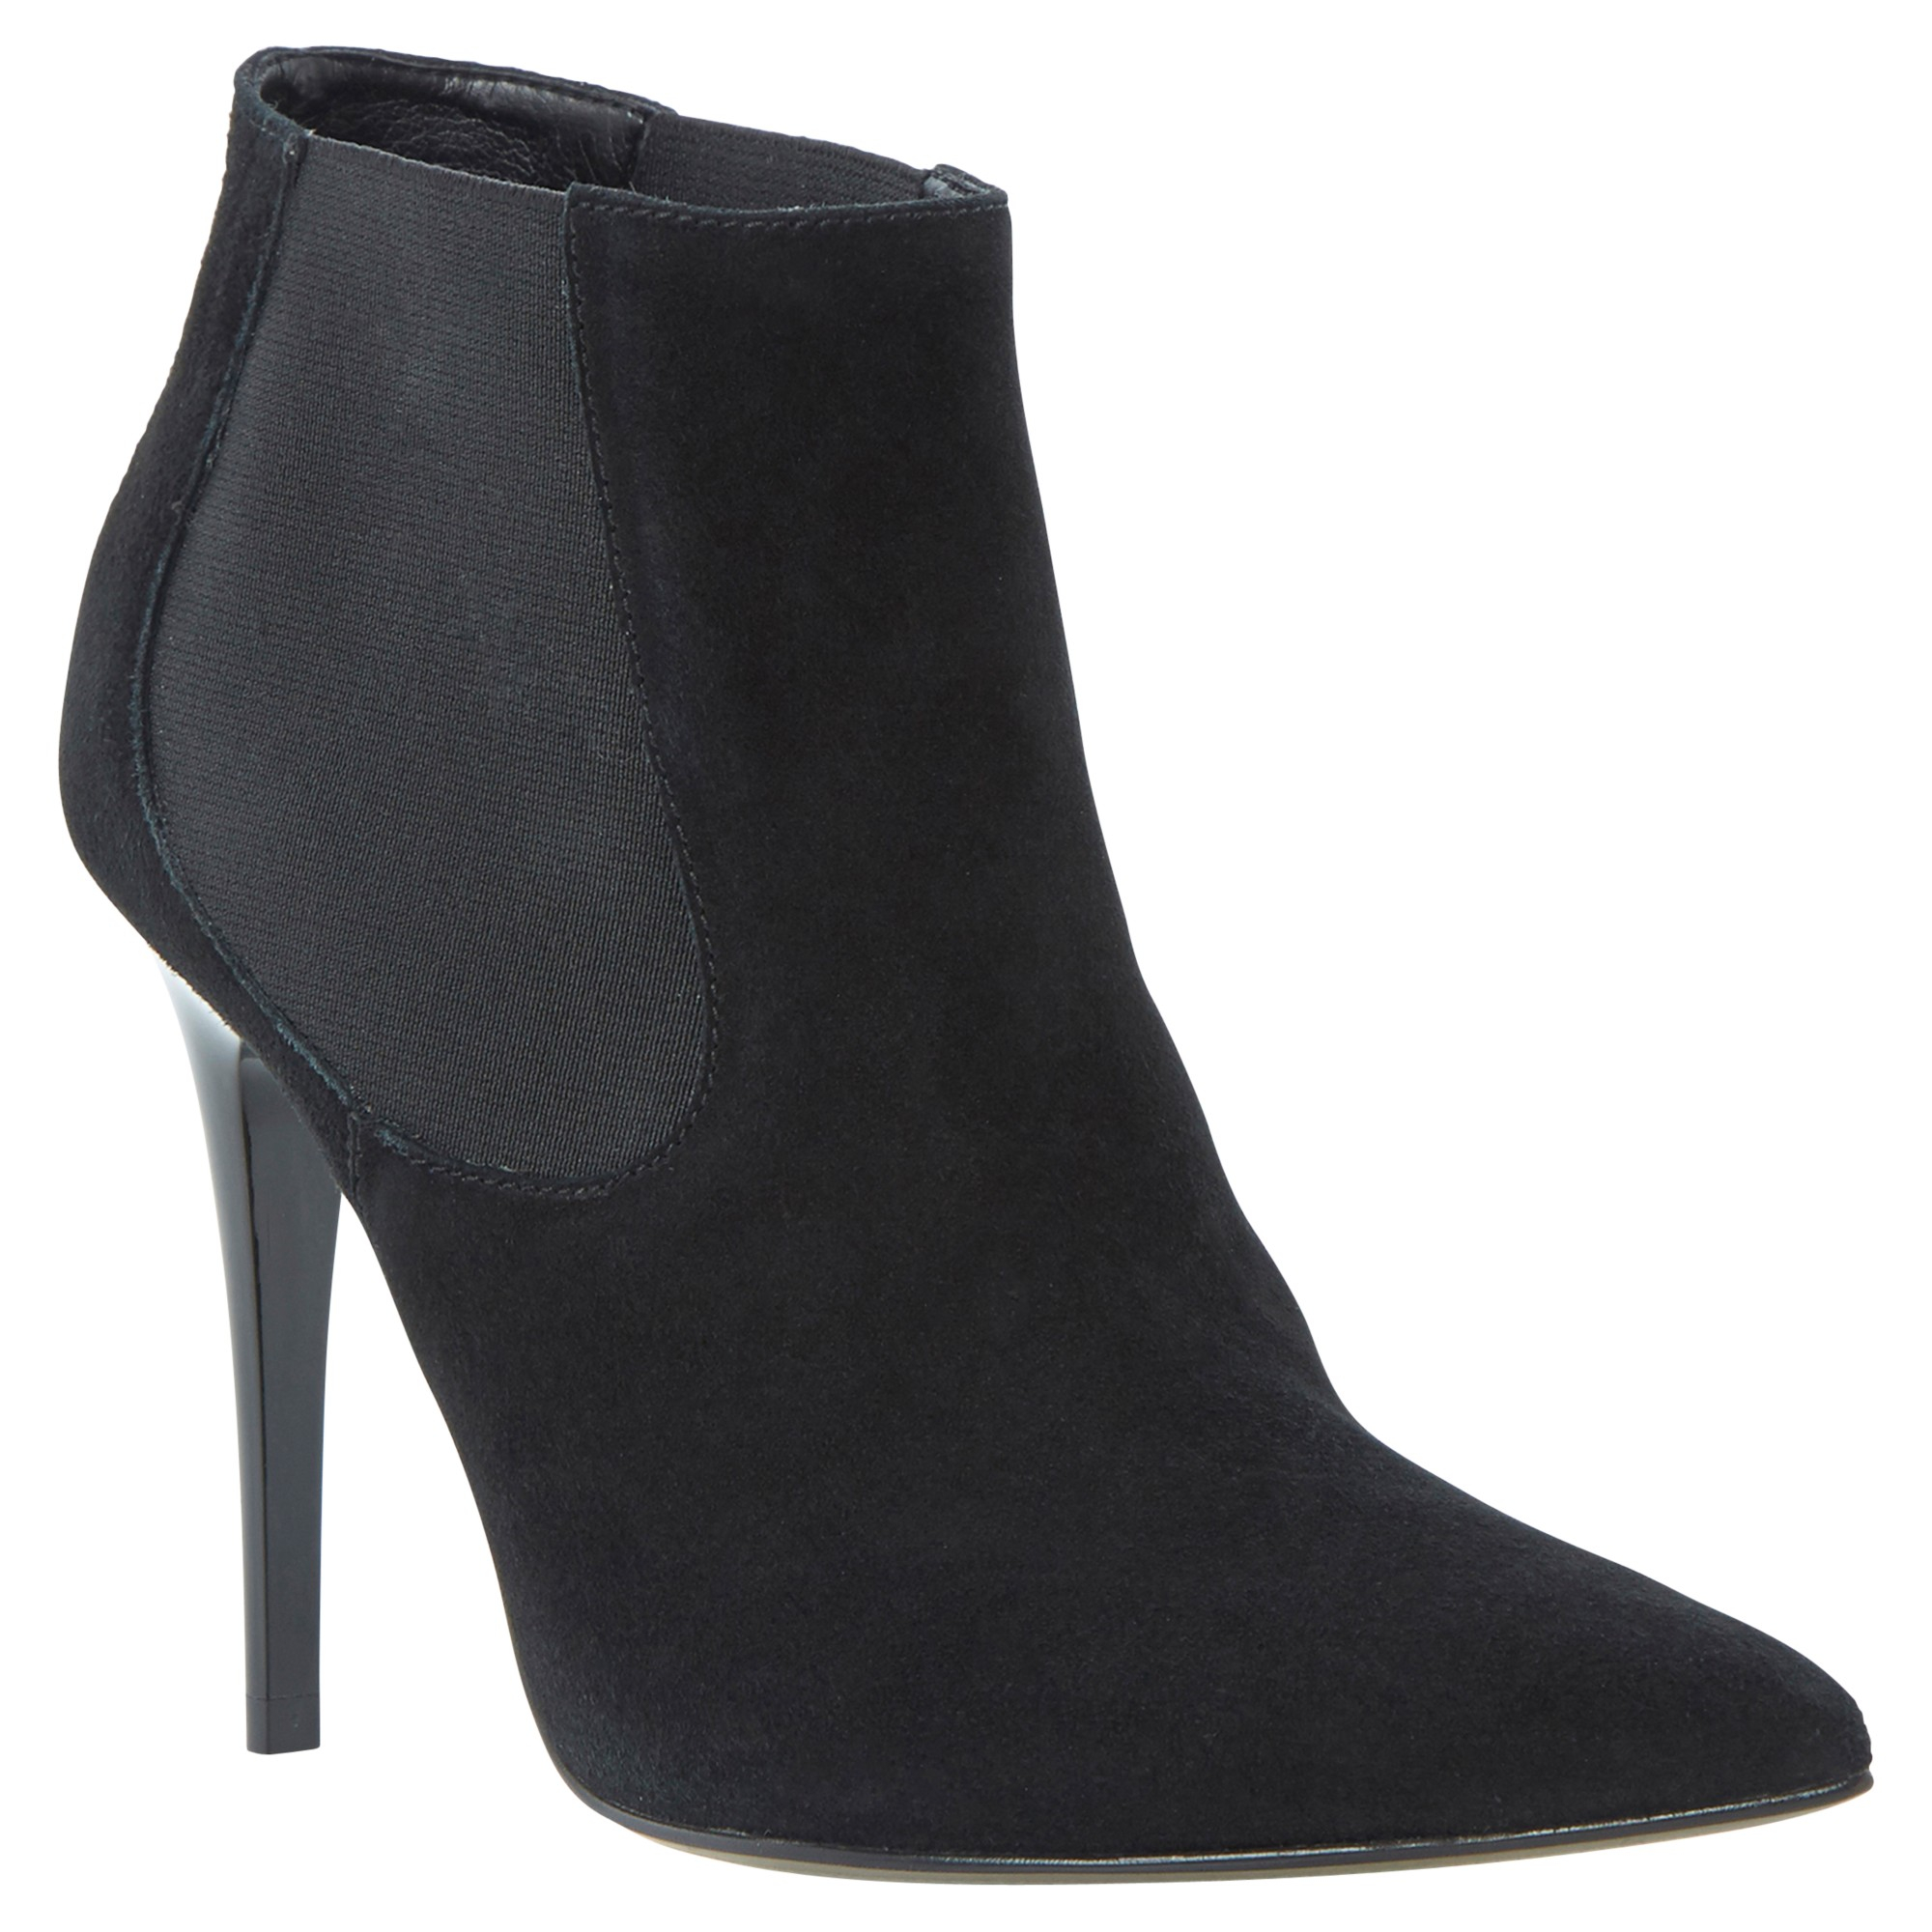 Dune Anola Pointed Suede Ankle Boots in Black